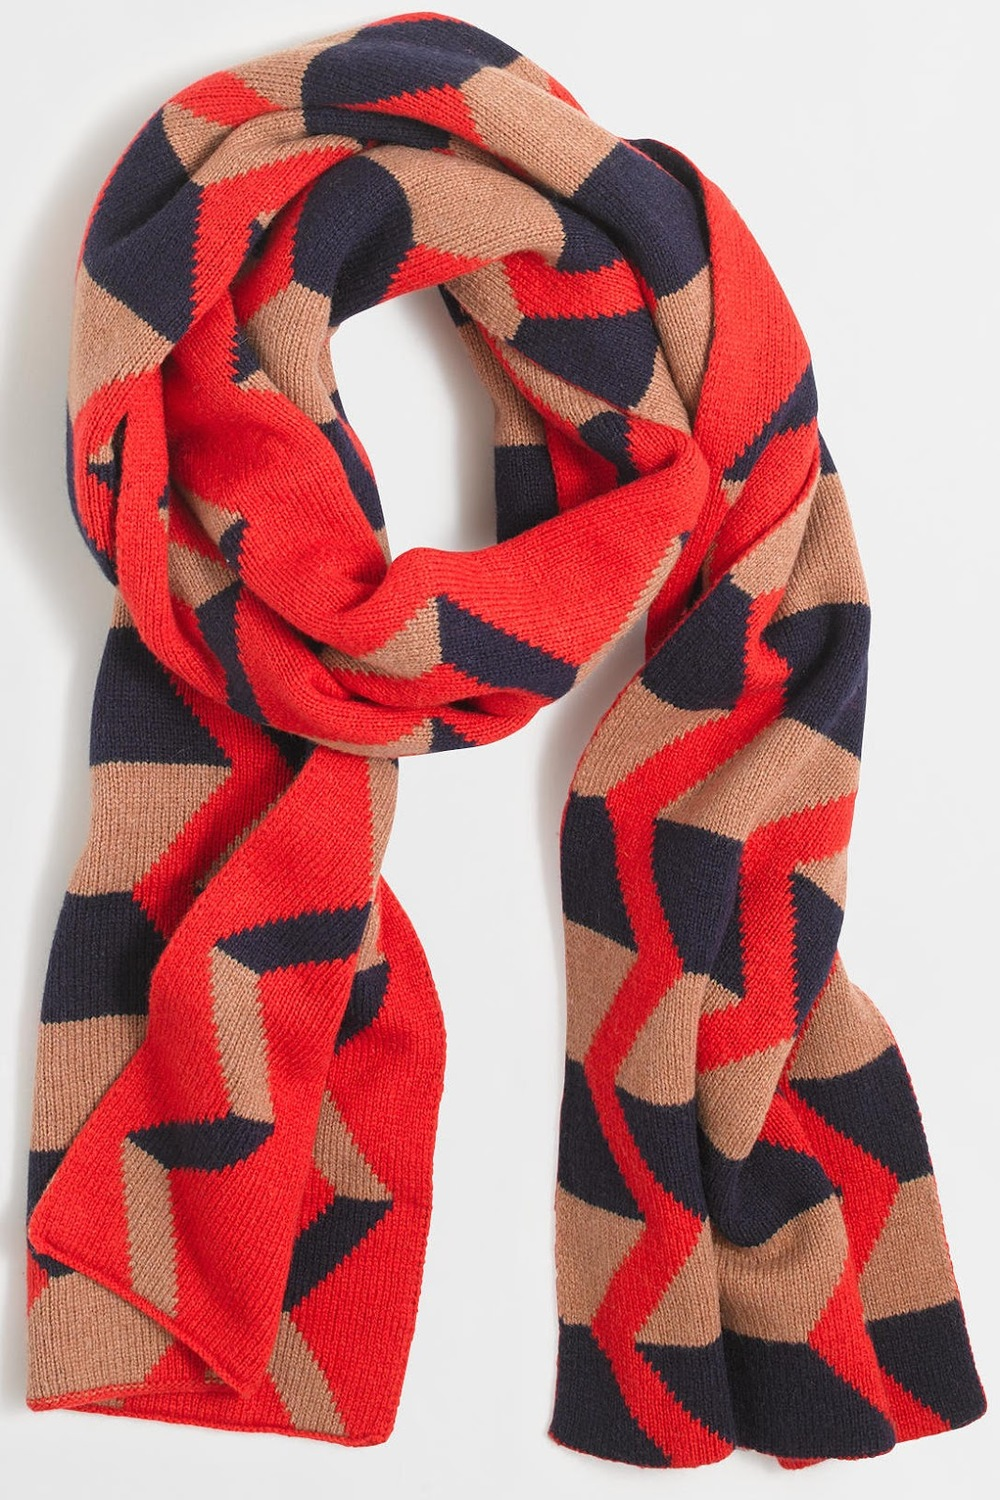 J.Crew Factory Zigzag Striped Scarf, $49 at    Factory.Jcrew.com .